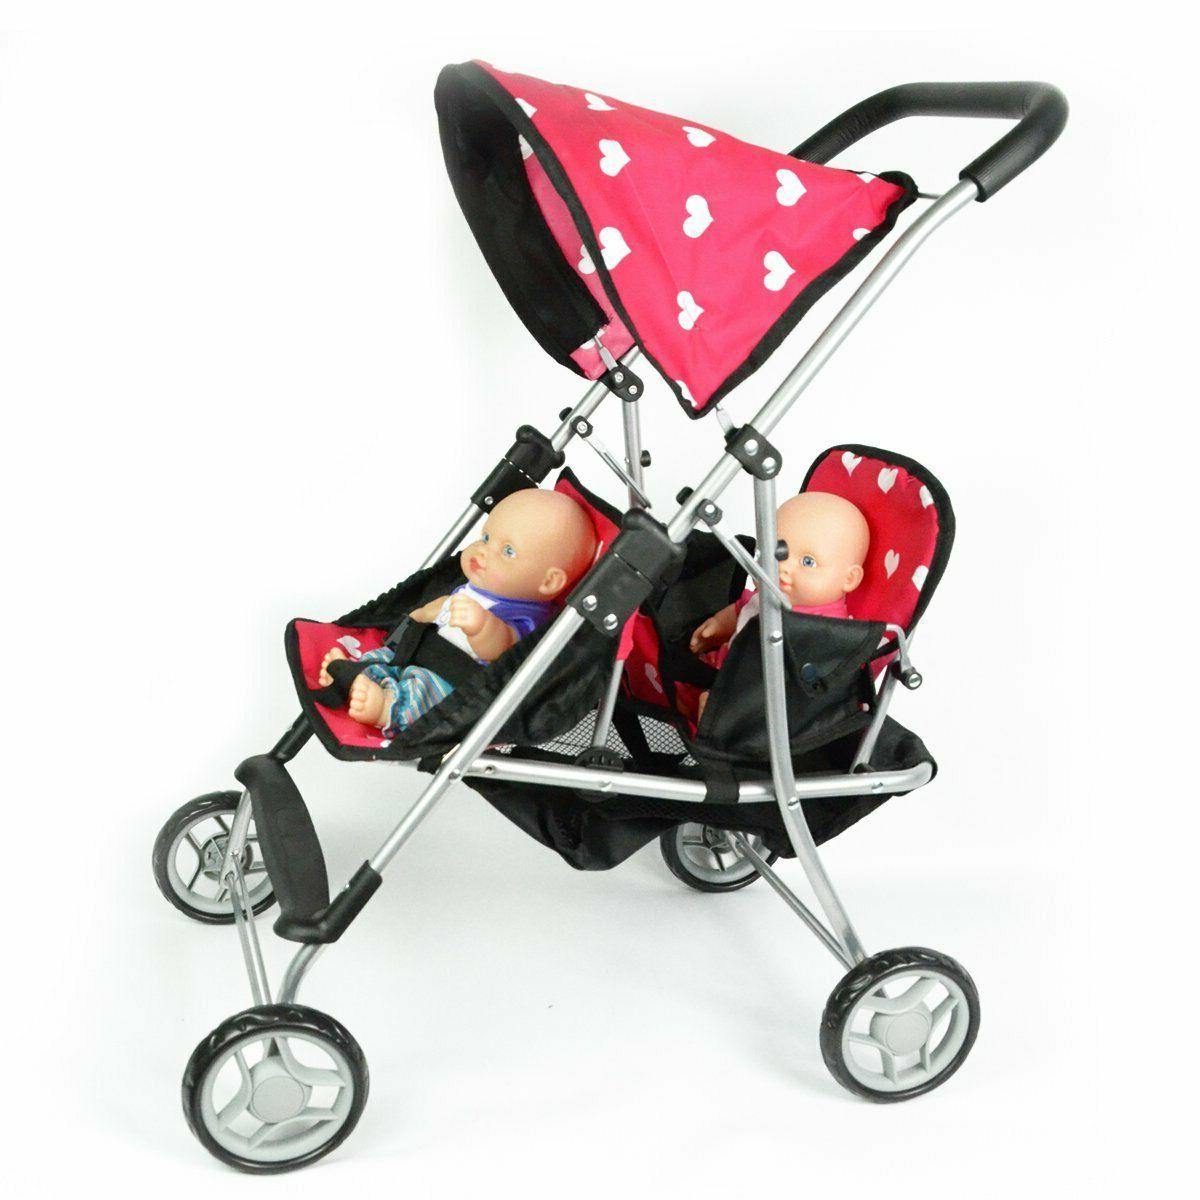 3D-One Convenience Stroller, Flint Gray - 32493